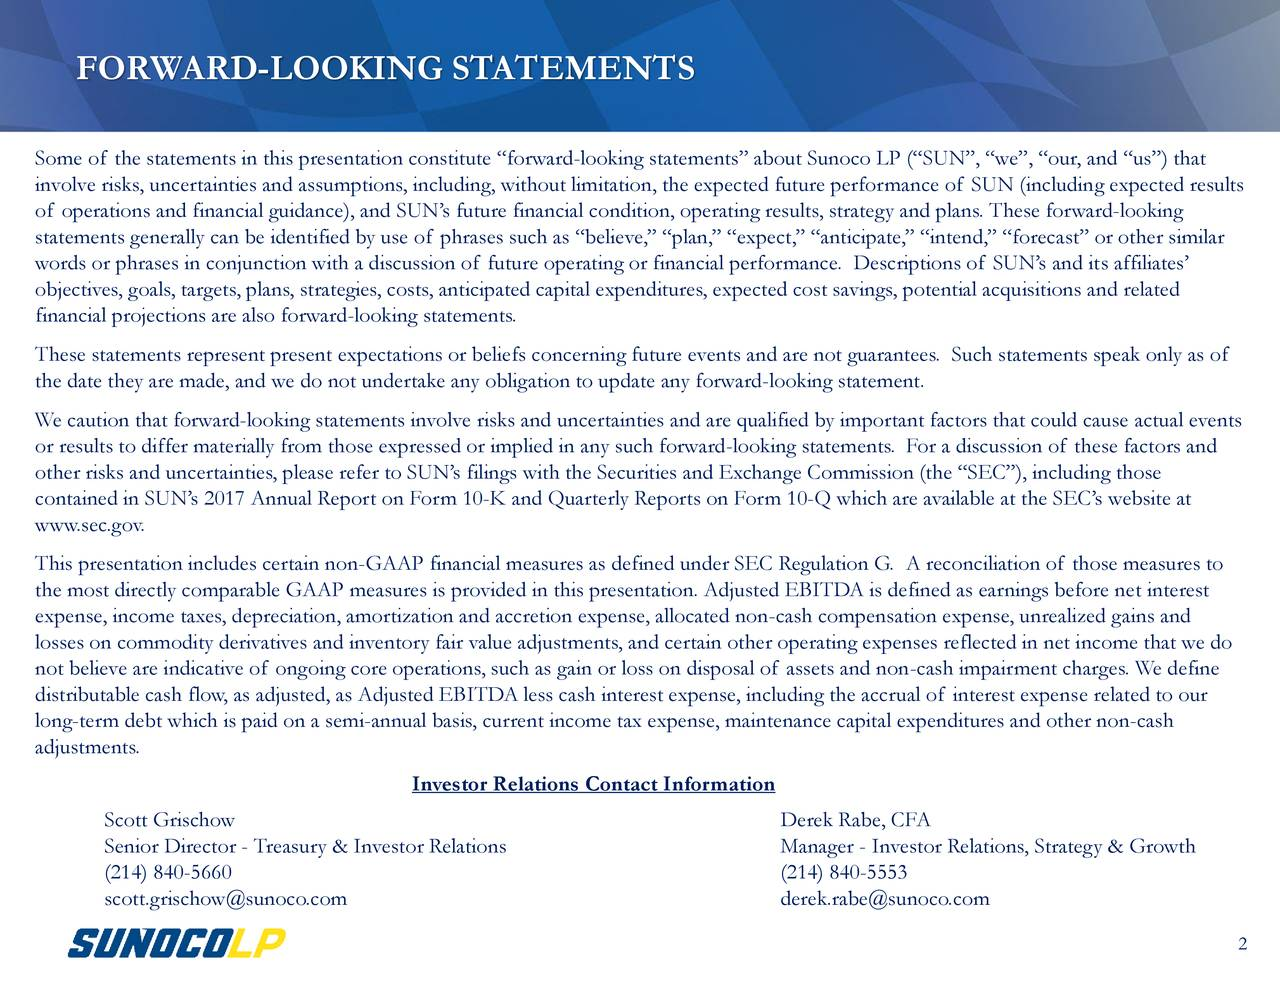 """Some of the statements in this presentation constitute """"forward-looking statements"""" about Sunoco LP (""""SUN"""", """"we"""", """"our, and """"us"""") that involve risks, uncertainties and assumptions, including, without limitation, the expected future performance of SUN (including expected results of operations and financial guidance), and SUN's future financial condition, operating results, strategy and plans. These forward-looking statements generally can be identified by use of phrases such as """"believe,"""" """"plan,"""" """"expect,"""" """"anticipate,"""" """"intend,"""" """"forecast"""" or other similar words or phrases in conjunction with a discussion of future operating or financial performance. Descriptions of SUN's and its affiliates' objectives, goals, targets, plans, strategies, costs, anticipated capital expenditures, expected cost savings, potential acquisitions and related financial projections are also forward-looking statements. These statements represent present expectations or beliefs concerning future events and are not guarantees. Such statements speak only as of the date they are made, and we do not undertake any obligation to update any forward-looking statement. We caution that forward-looking statements involve risks and uncertainties and are qualified by important factors that could cause actual events or results to differ materially from those expressed or implied in any such forward-looking statements. For a discussion of these factors and other risks and uncertainties, please refer to SUN's filings with the Securities and Exchange Commission (the """"SEC""""), including those contained in SUN's 2017 Annual Report on Form 10-K and Quarterly Reports on Form 10-Q which are available at the SEC's website at www.sec.gov. This presentation includes certain non-GAAP financial measures as defined under SEC Regulation G. A reconciliation of those measures to the most directly comparable GAAP measures is provided in this presentation. Adjusted EBITDA is defined as earnings before net interest expense, inco"""